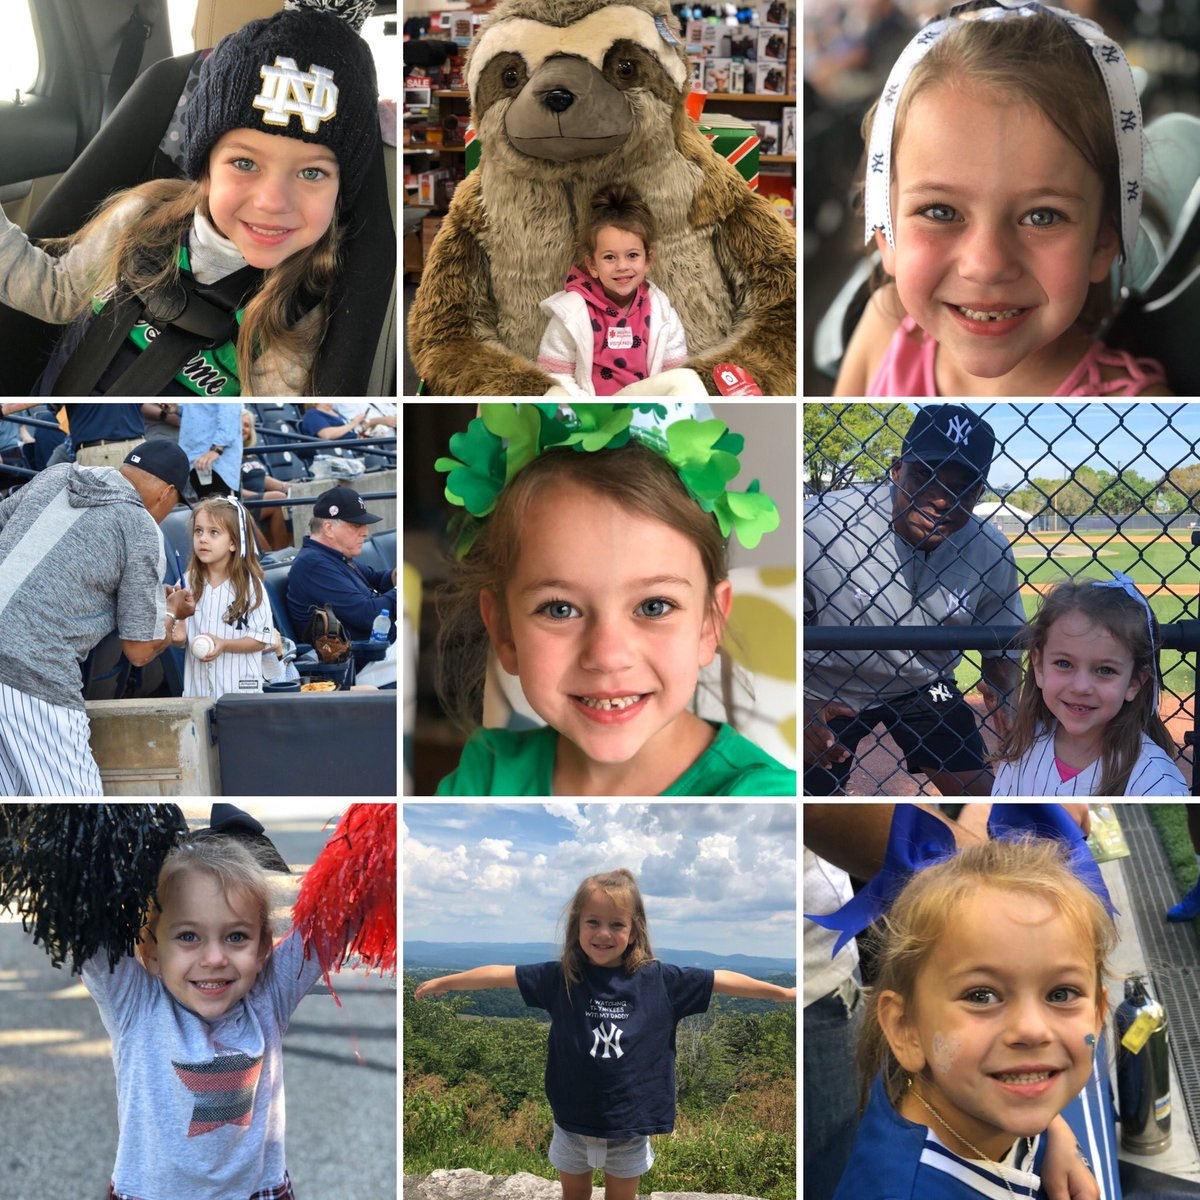 Today our baby girl turned 6! She is full of life, smart, sassy, sweet and caring! Here's to another year full of adventures my sweet princess!! #GrowingUpTooFast #OurBaby #PrincessEvie #SixGoingOnSixteenpic.twitter.com/LCWarvKXUY